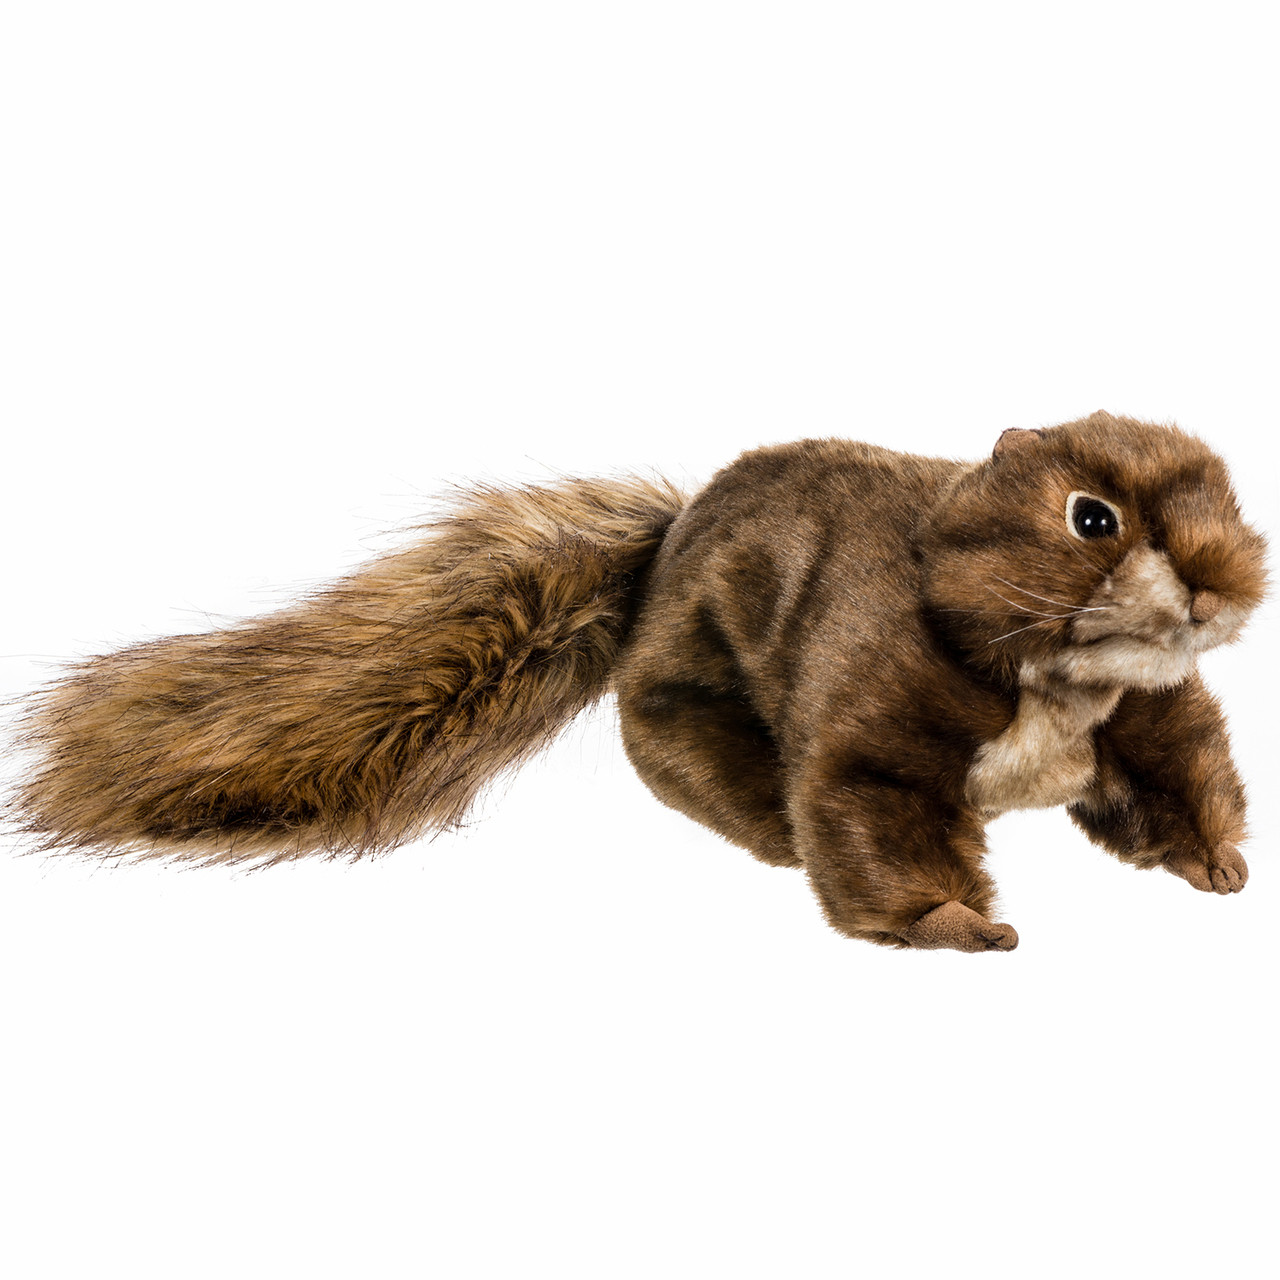 Christmas Vacation Squirrel.Squirrel Christmas Vacation Attacking Squirrel Puppet